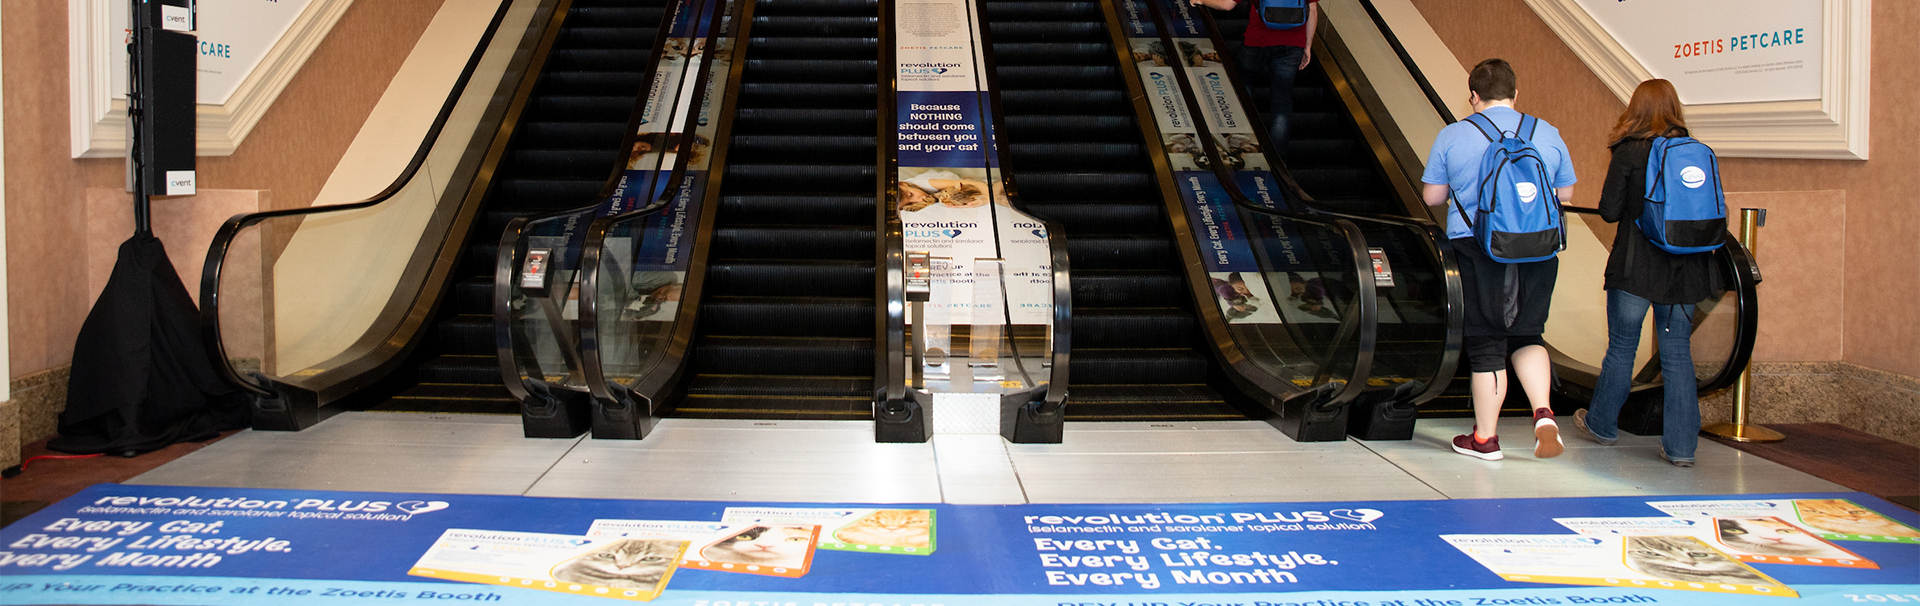 1920x606_Advertising_Escalators